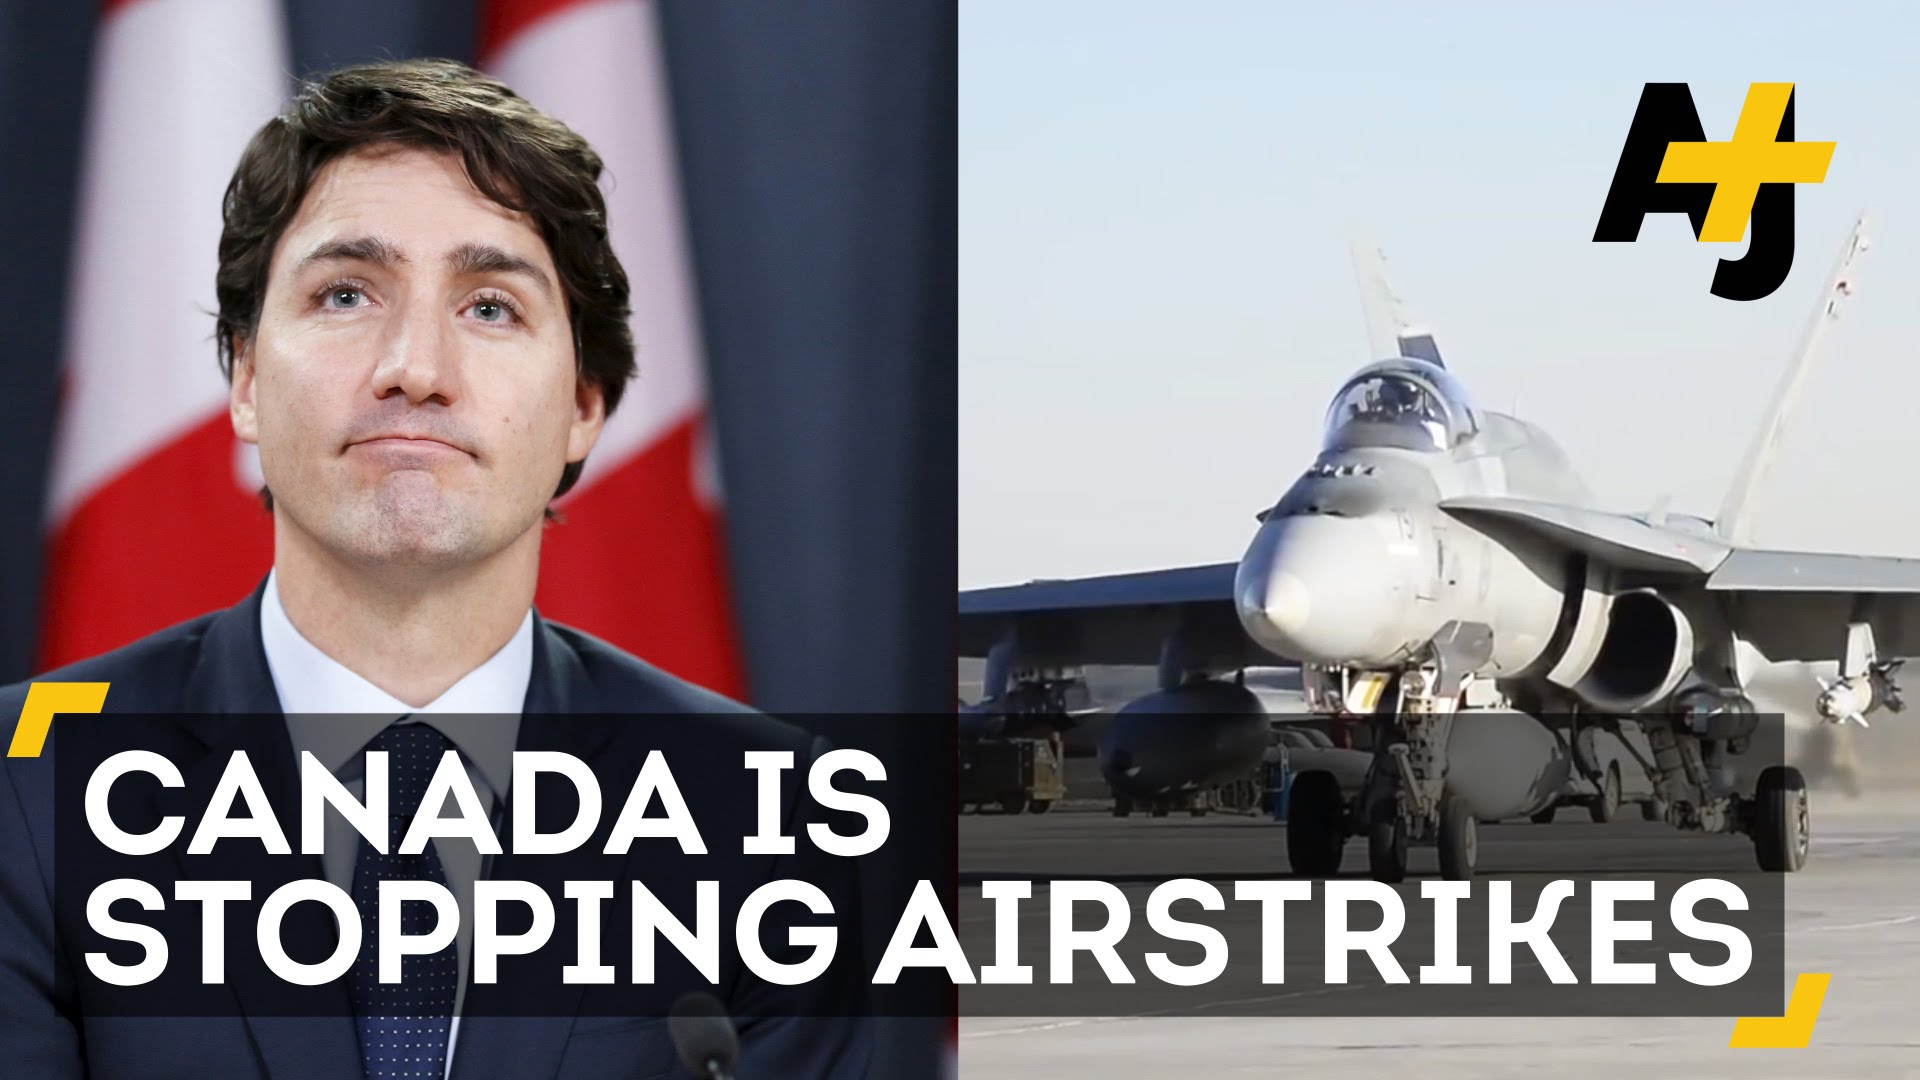 Canada's Justin Trudeau To Stop Airstrikes Against ISIS